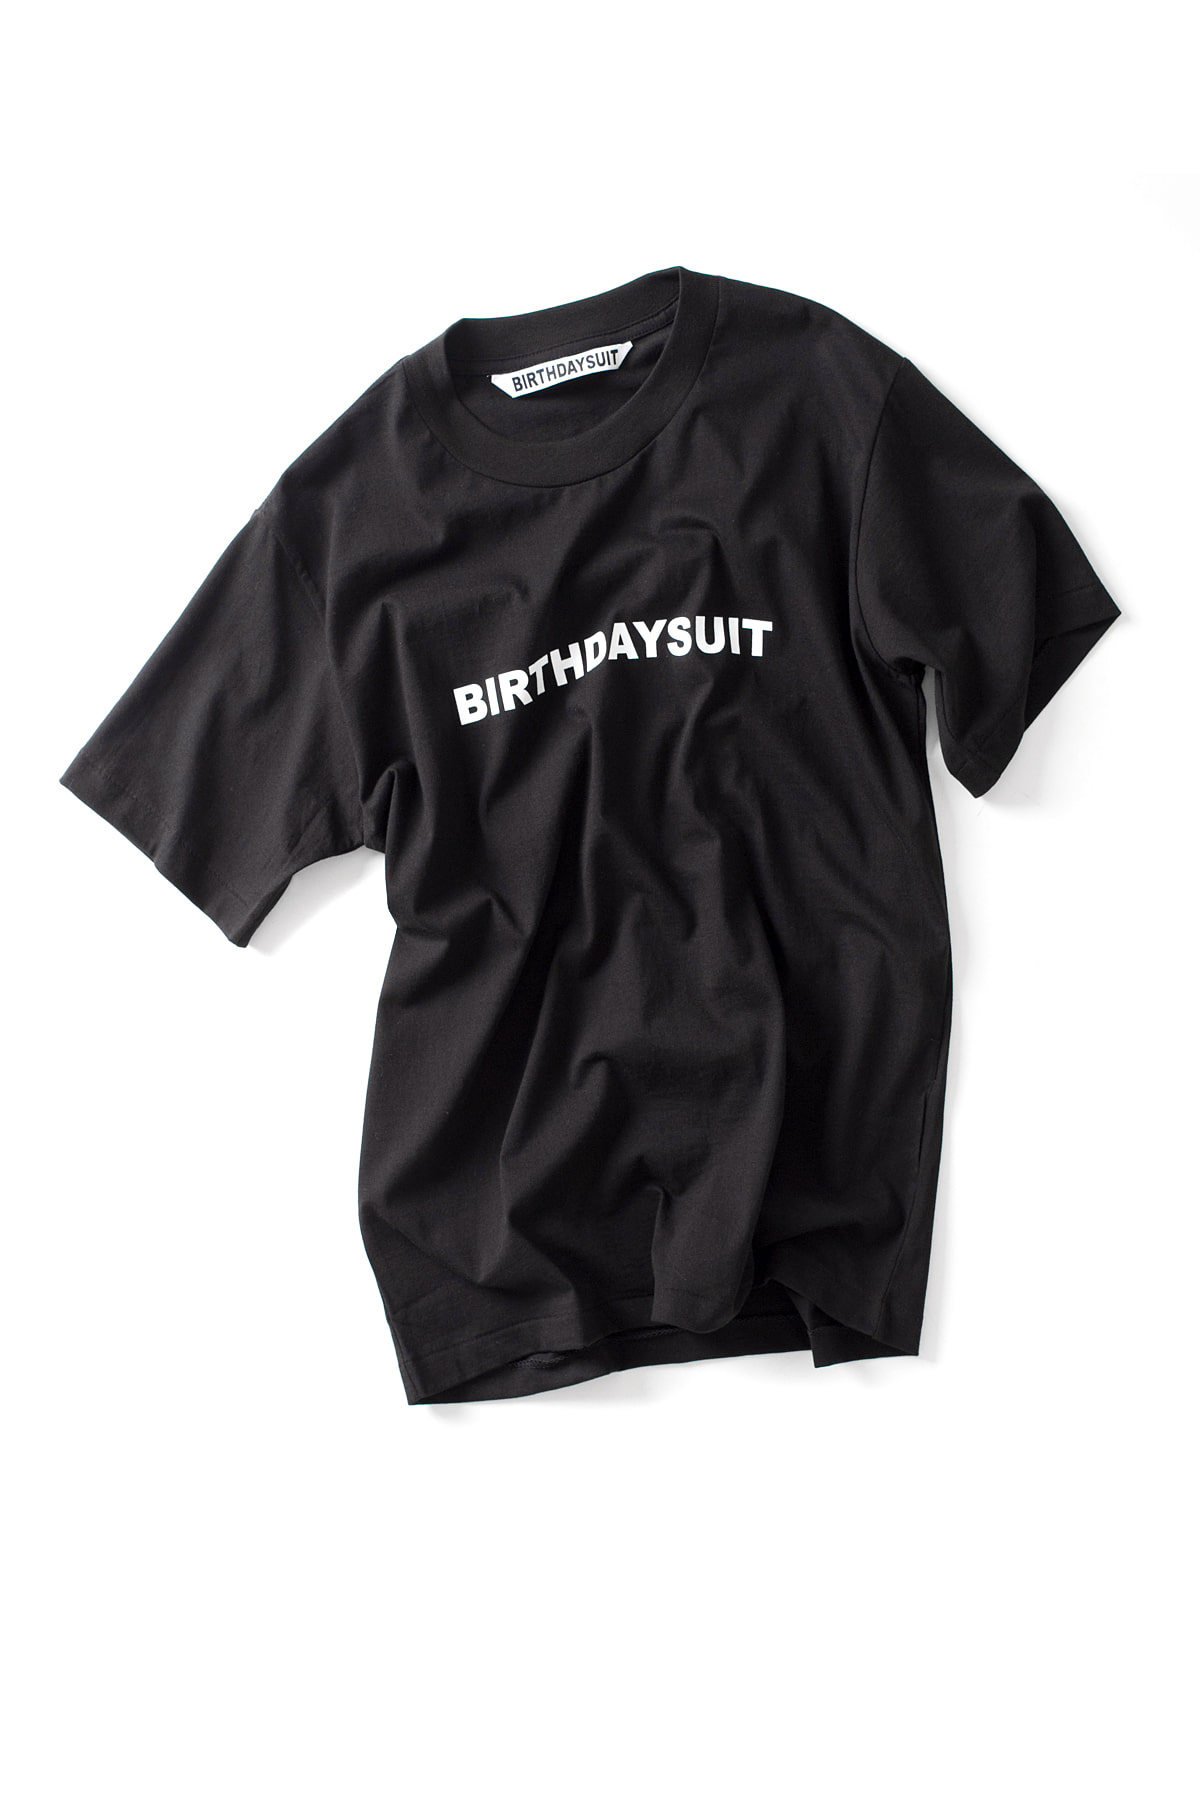 BIRTHDAYSUIT : LOGO Tee (Coca Cola)